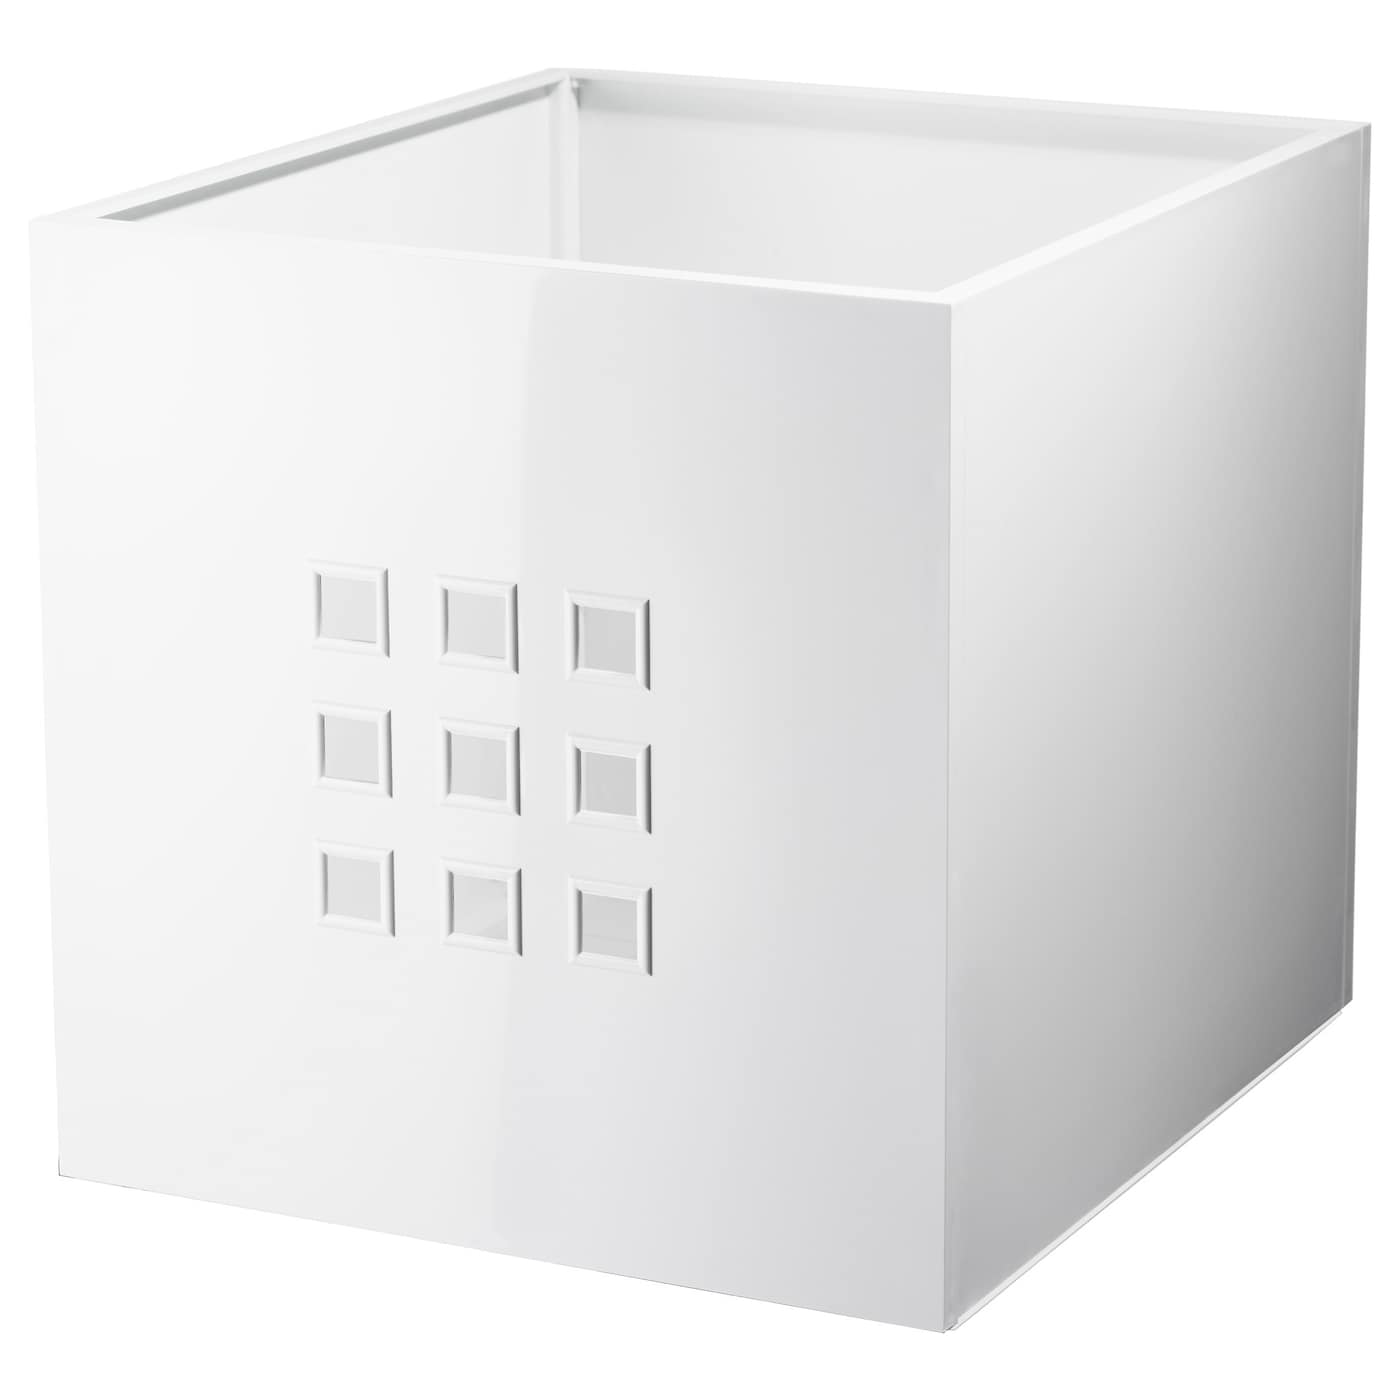 IKEA LEKMAN box Perfect for everything from newspapers to clothes.